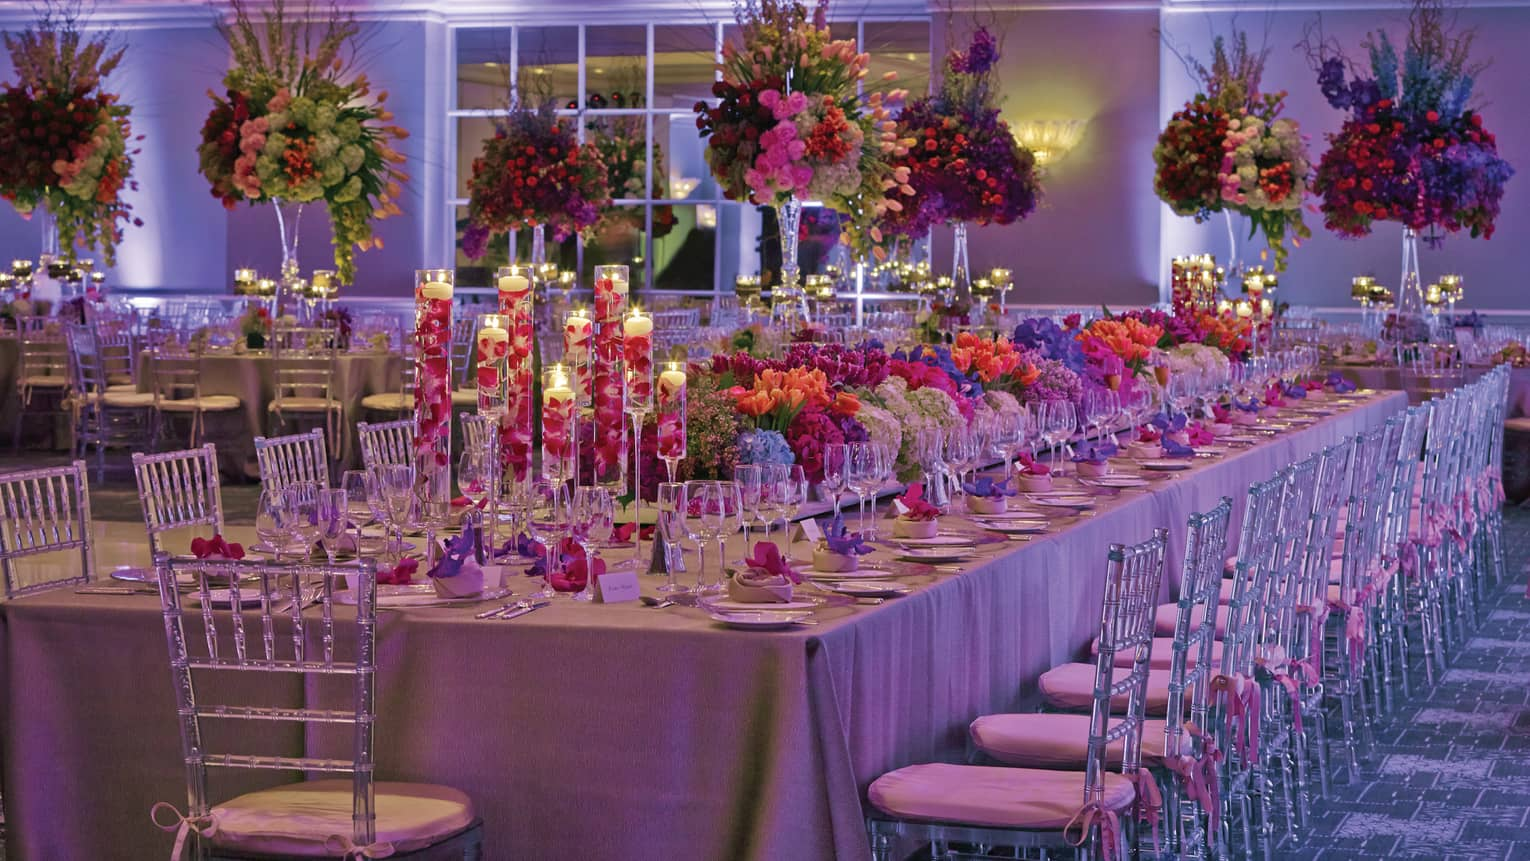 Large tropical flower-filled wedding banquet table in candlelit ballroom with purple lights